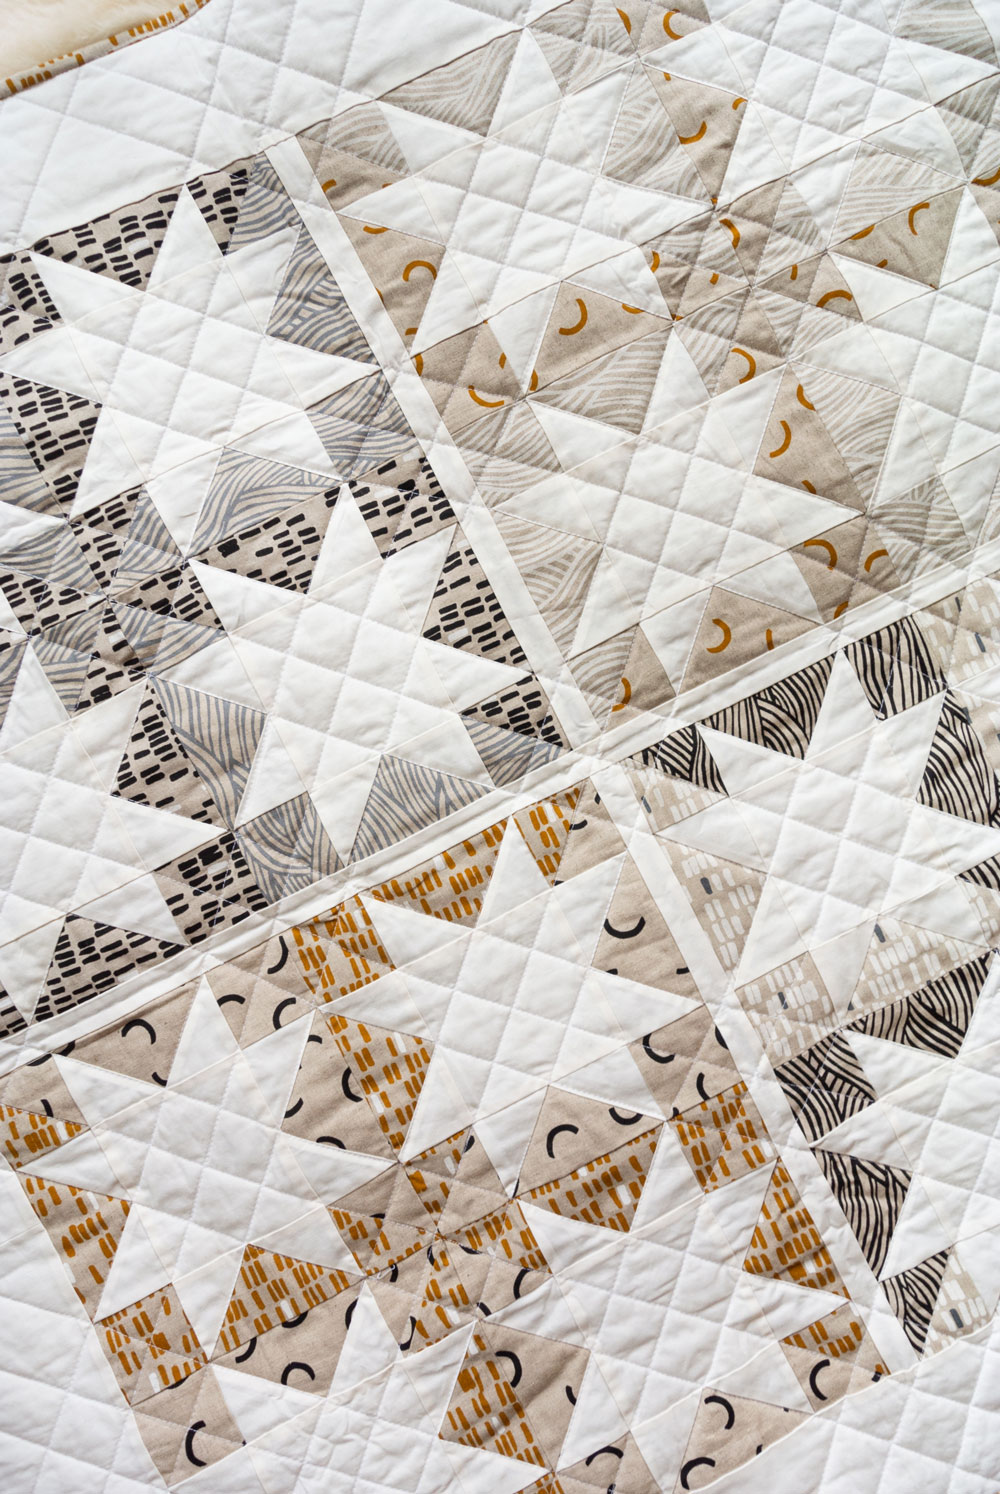 Make a sophisticated, neutral quilt using the Stars Hollow quilt pattern. This is a classic quilt pattern, but with a modern twist. The design plays on negative space to create traditional sawtooth star quilt blocks. suzyquilts.com #homedecor #quiltpattern